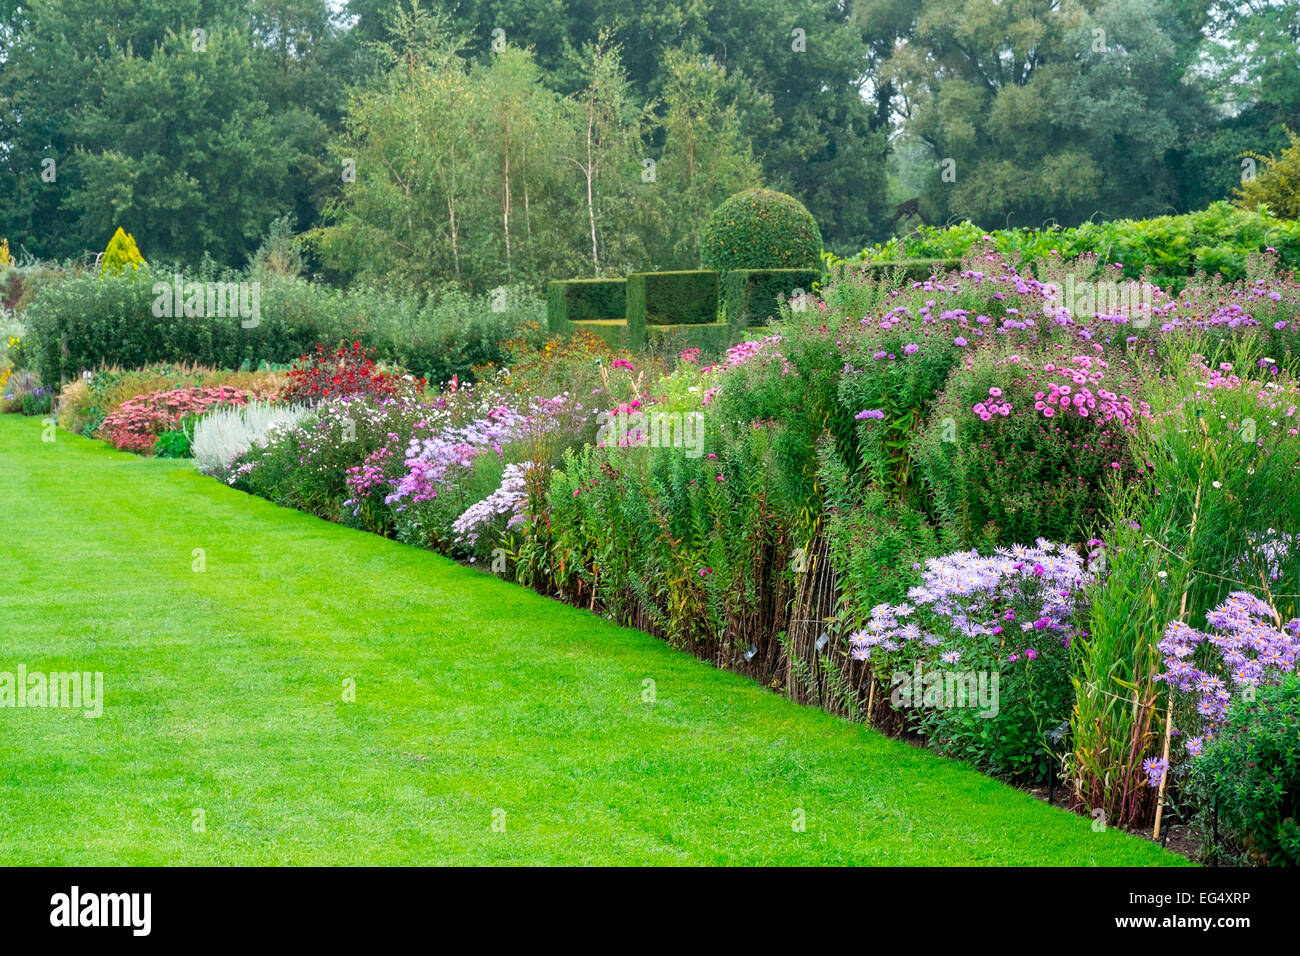 Herbaecous Border at Waterperry Gardens - Stock Image